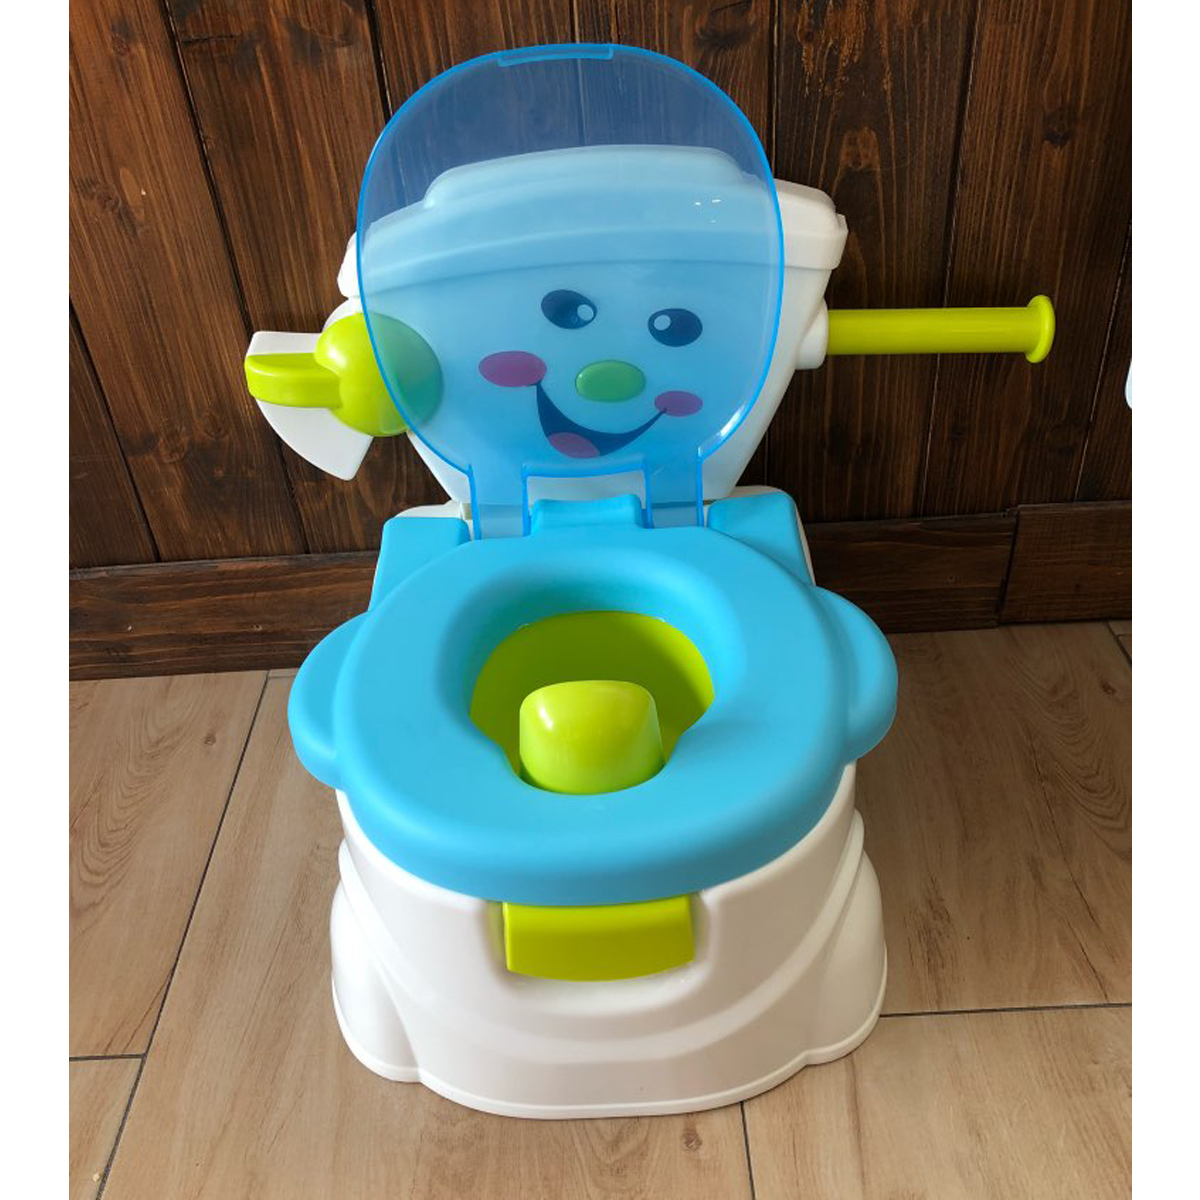 Coffee IVYRISE Frog Children Toilet Potty Training Urinal Kids Toddler Urinal Pee Trainer Bathroom with Funny Aiming Target Pee Urinate Training